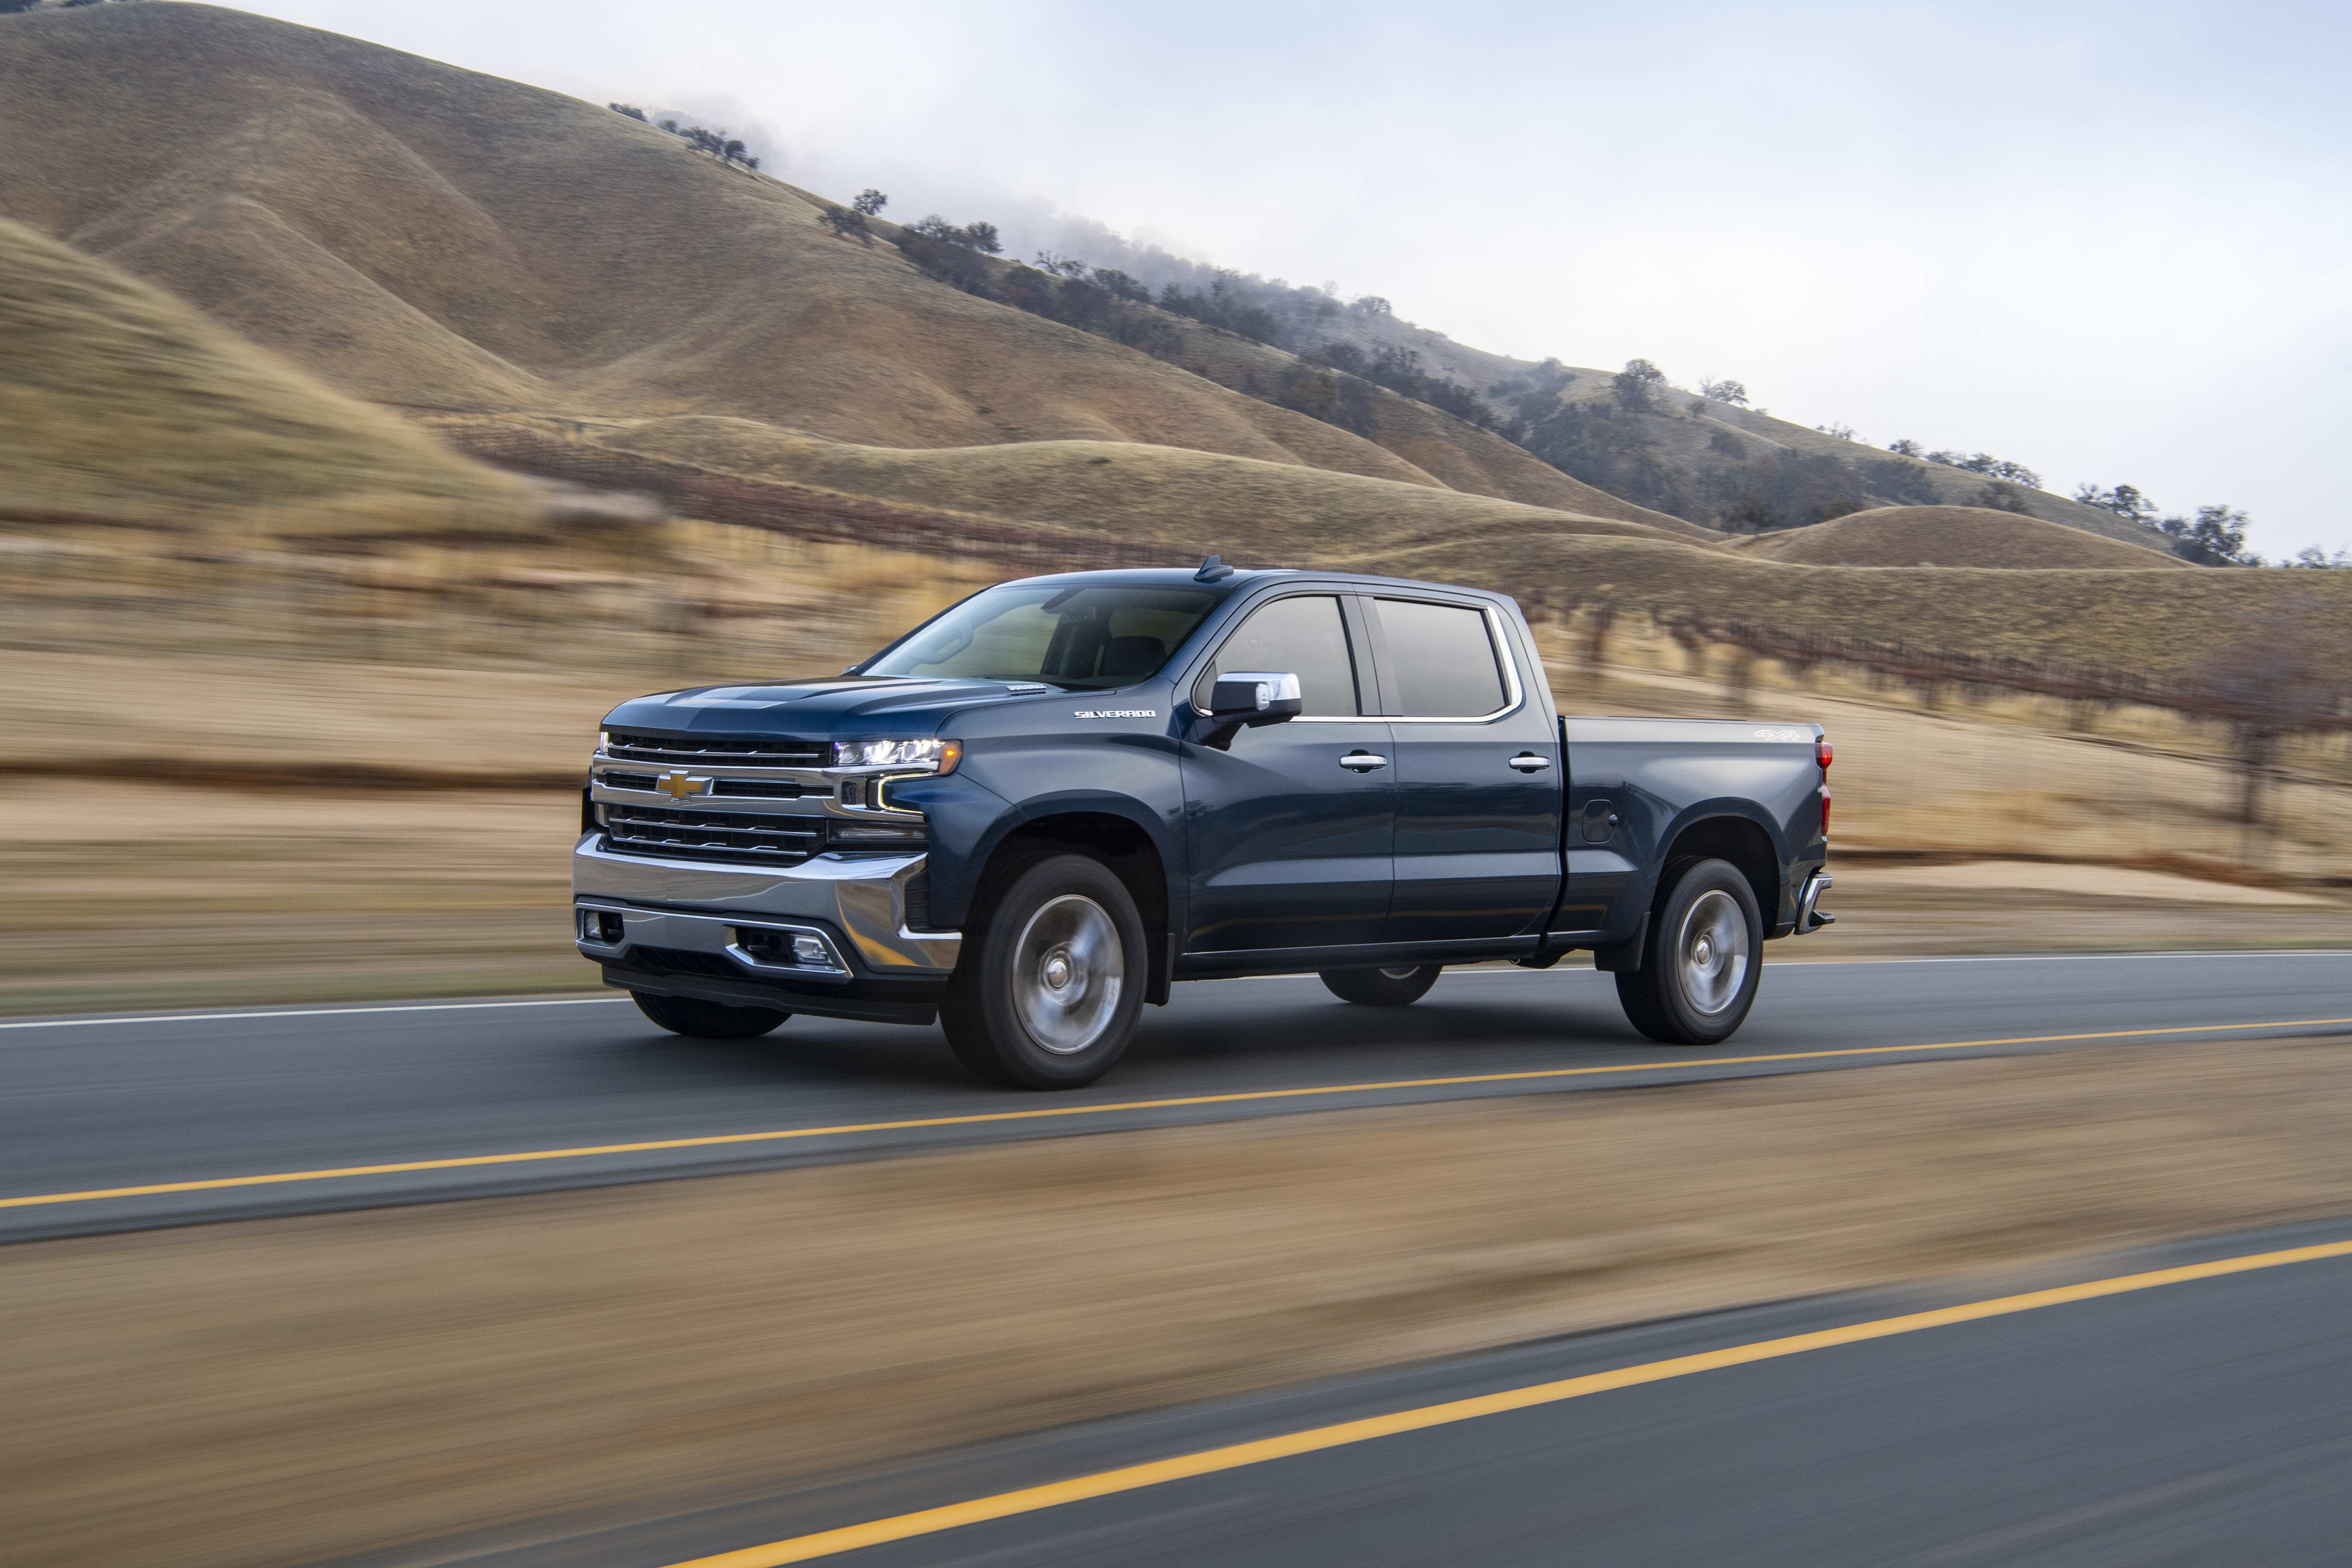 92 The Best 2020 Silverado 1500 Diesel Wallpaper